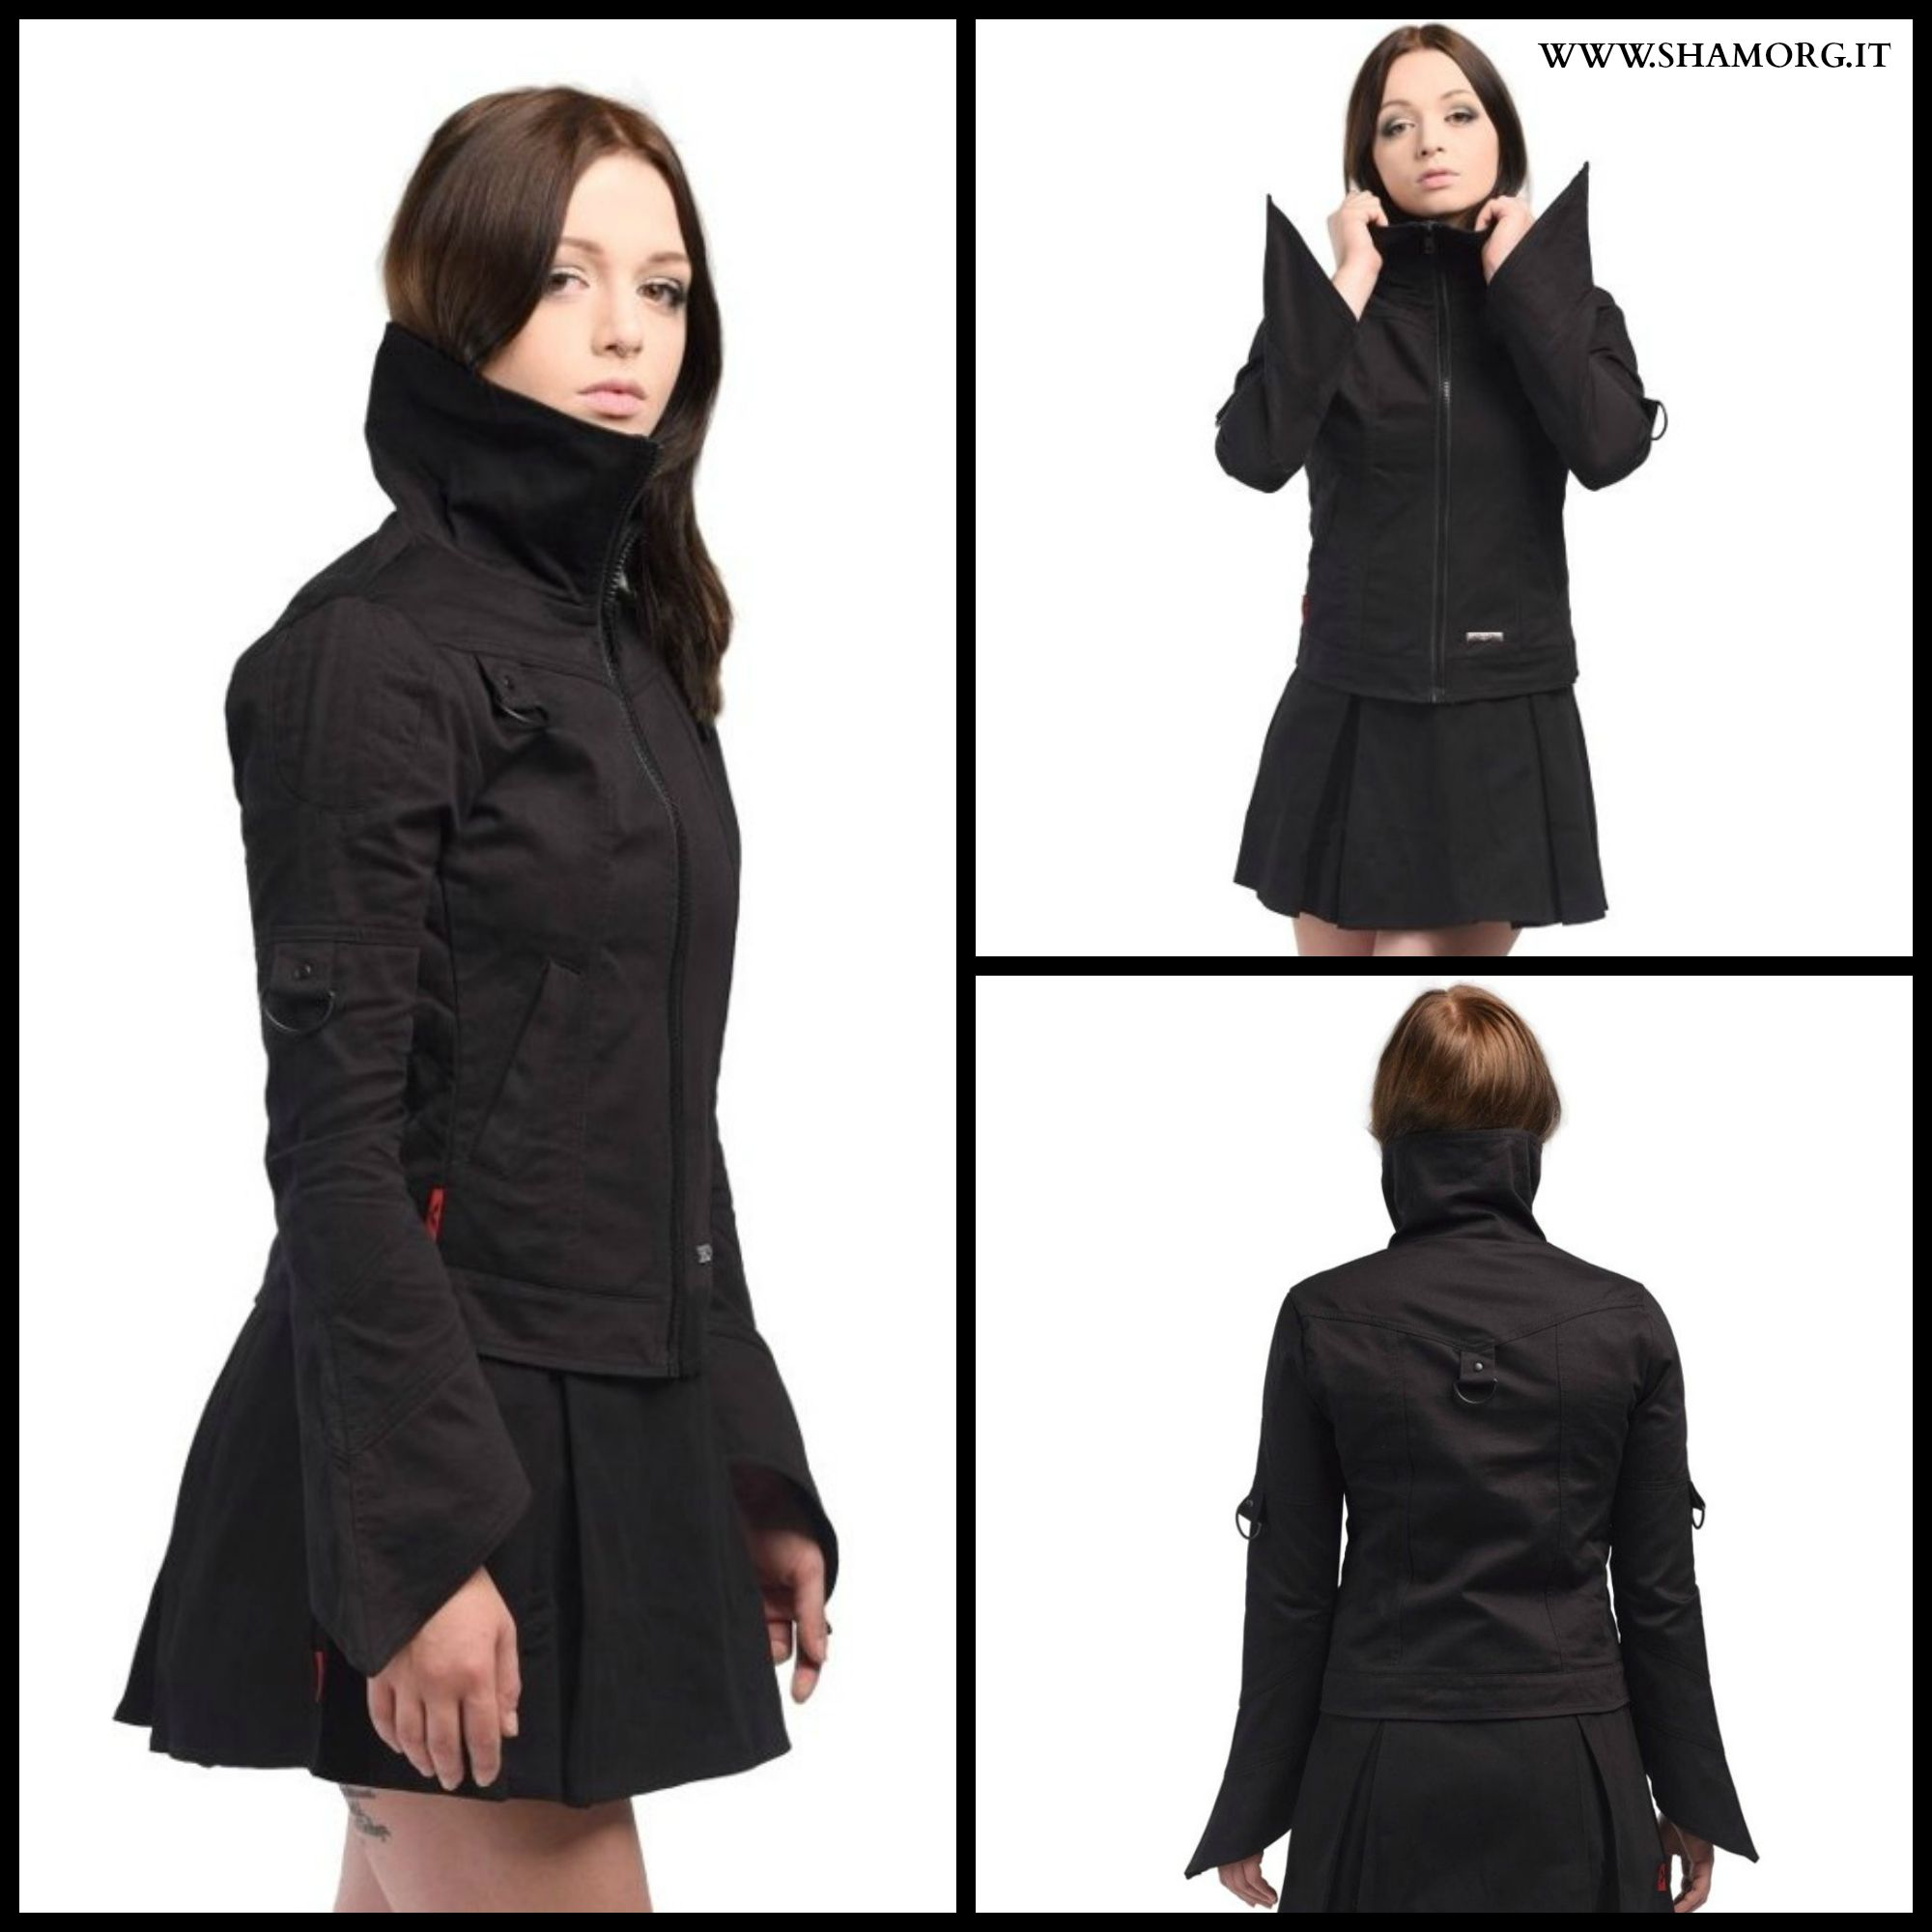 Jacket with seams and bell-shaped sleeves Simply gothalicious! ✝~❥ #shamorg